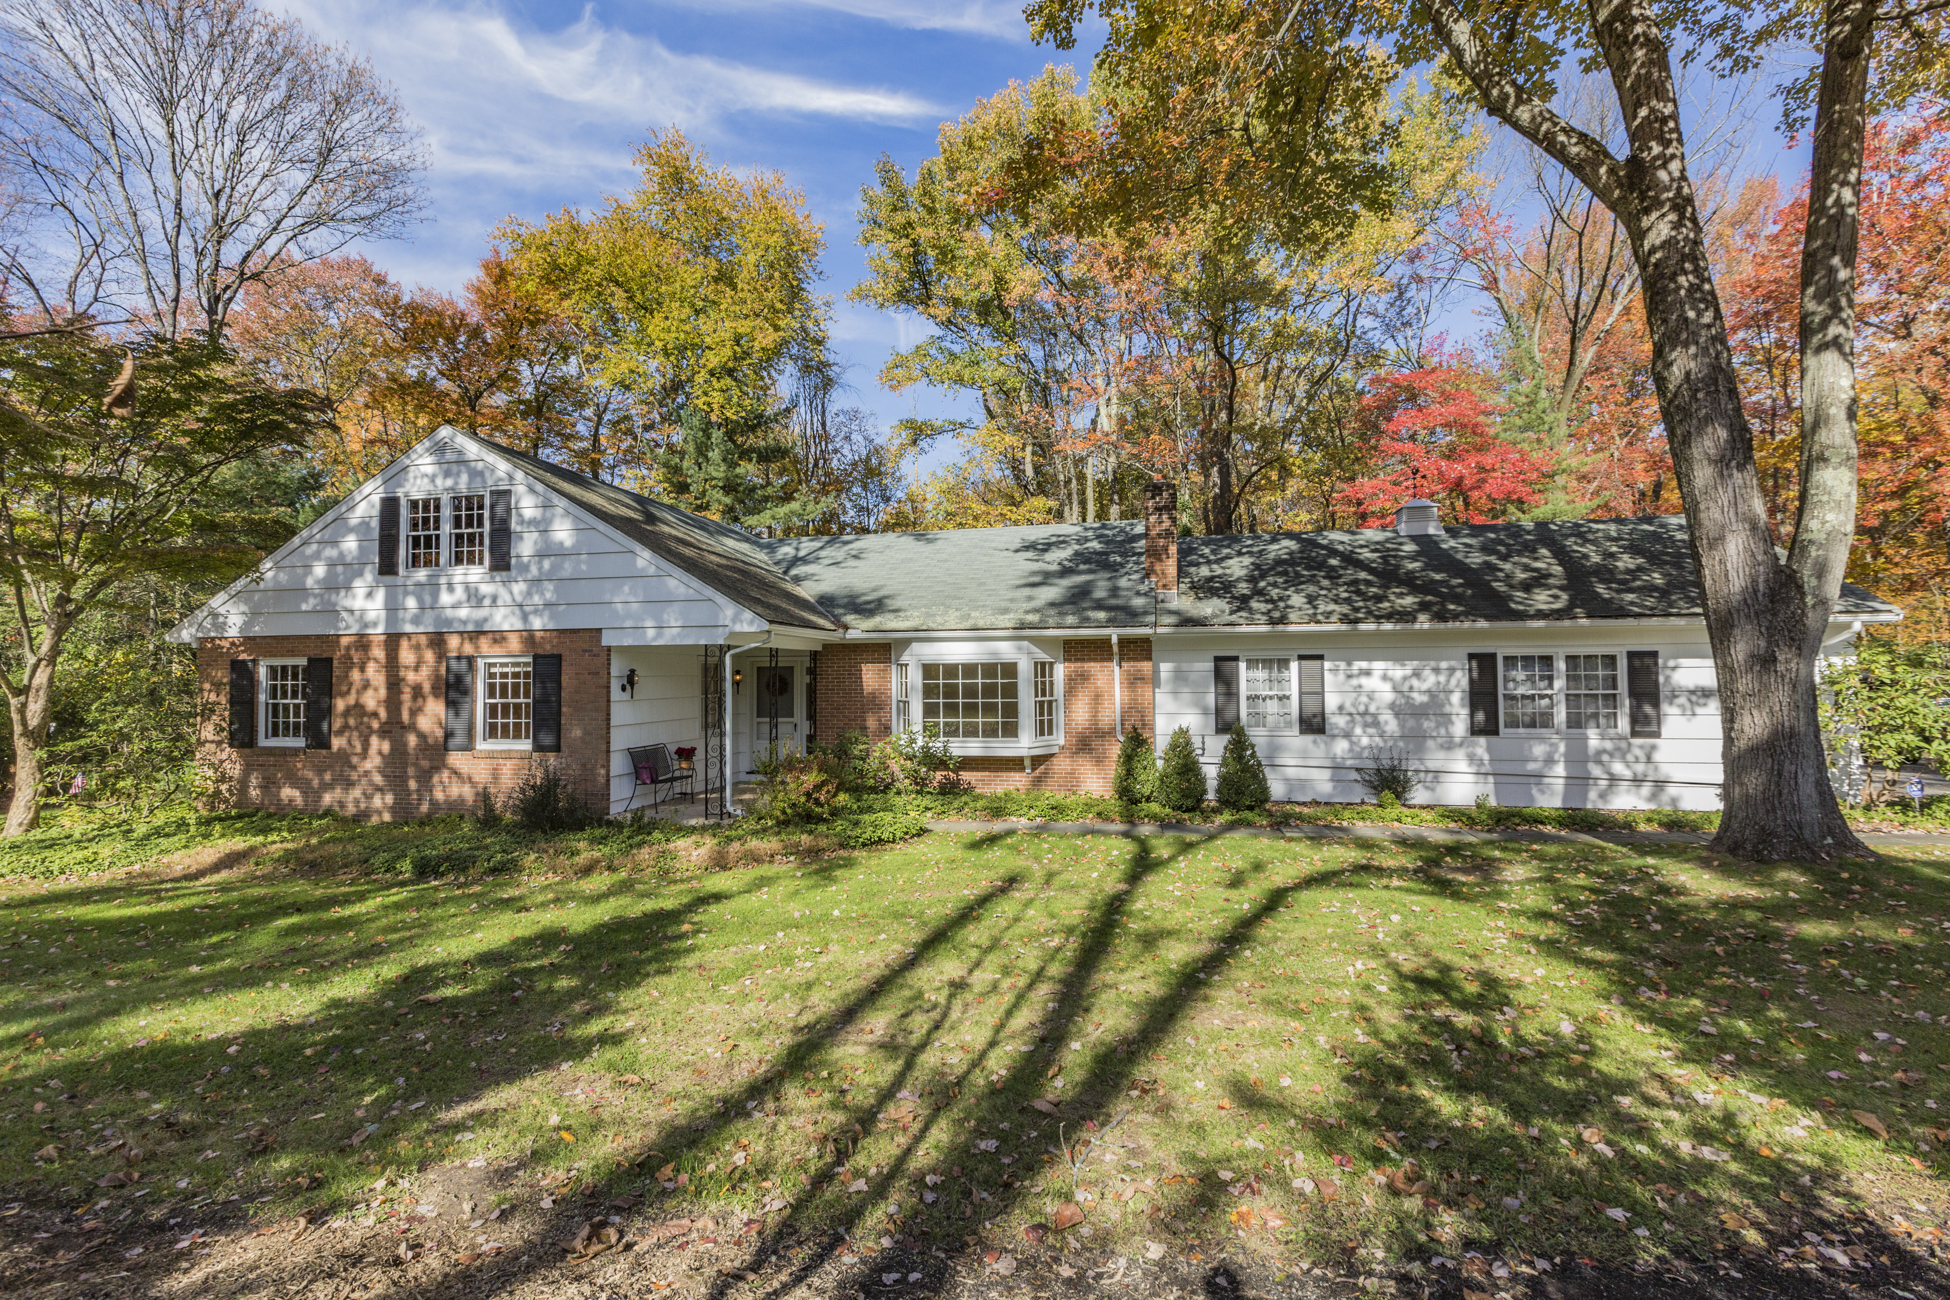 Villa per Vendita alle ore Expanded Ranch Delights with Warmth and Potential - Lawrence Township 6 Van Kirk Road Princeton, New Jersey, 08540 Stati Uniti